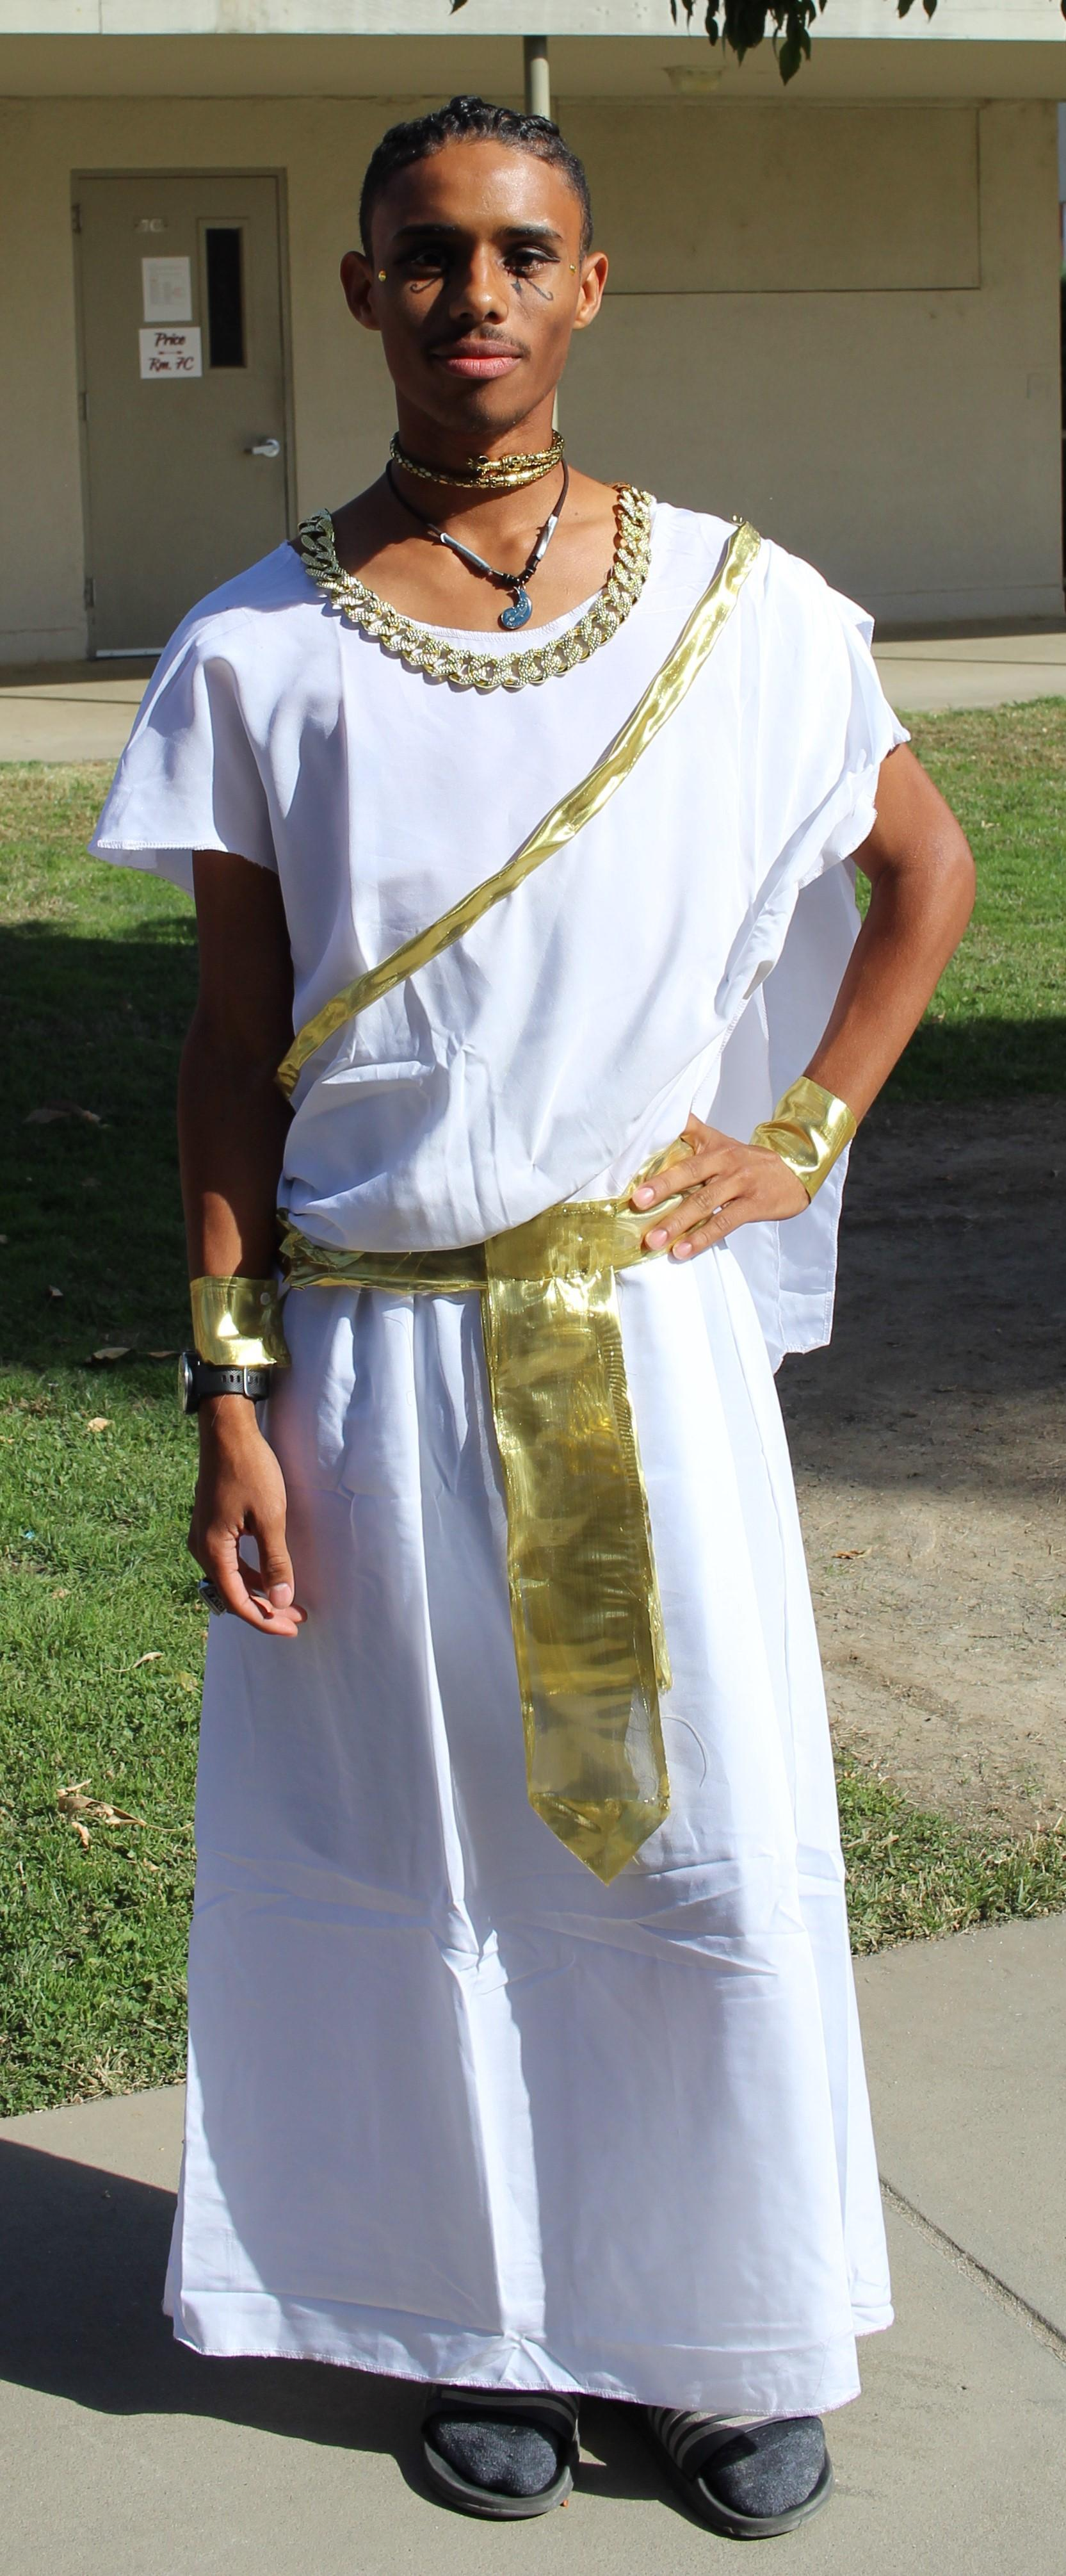 Lawrence Luna as a Pharaoh